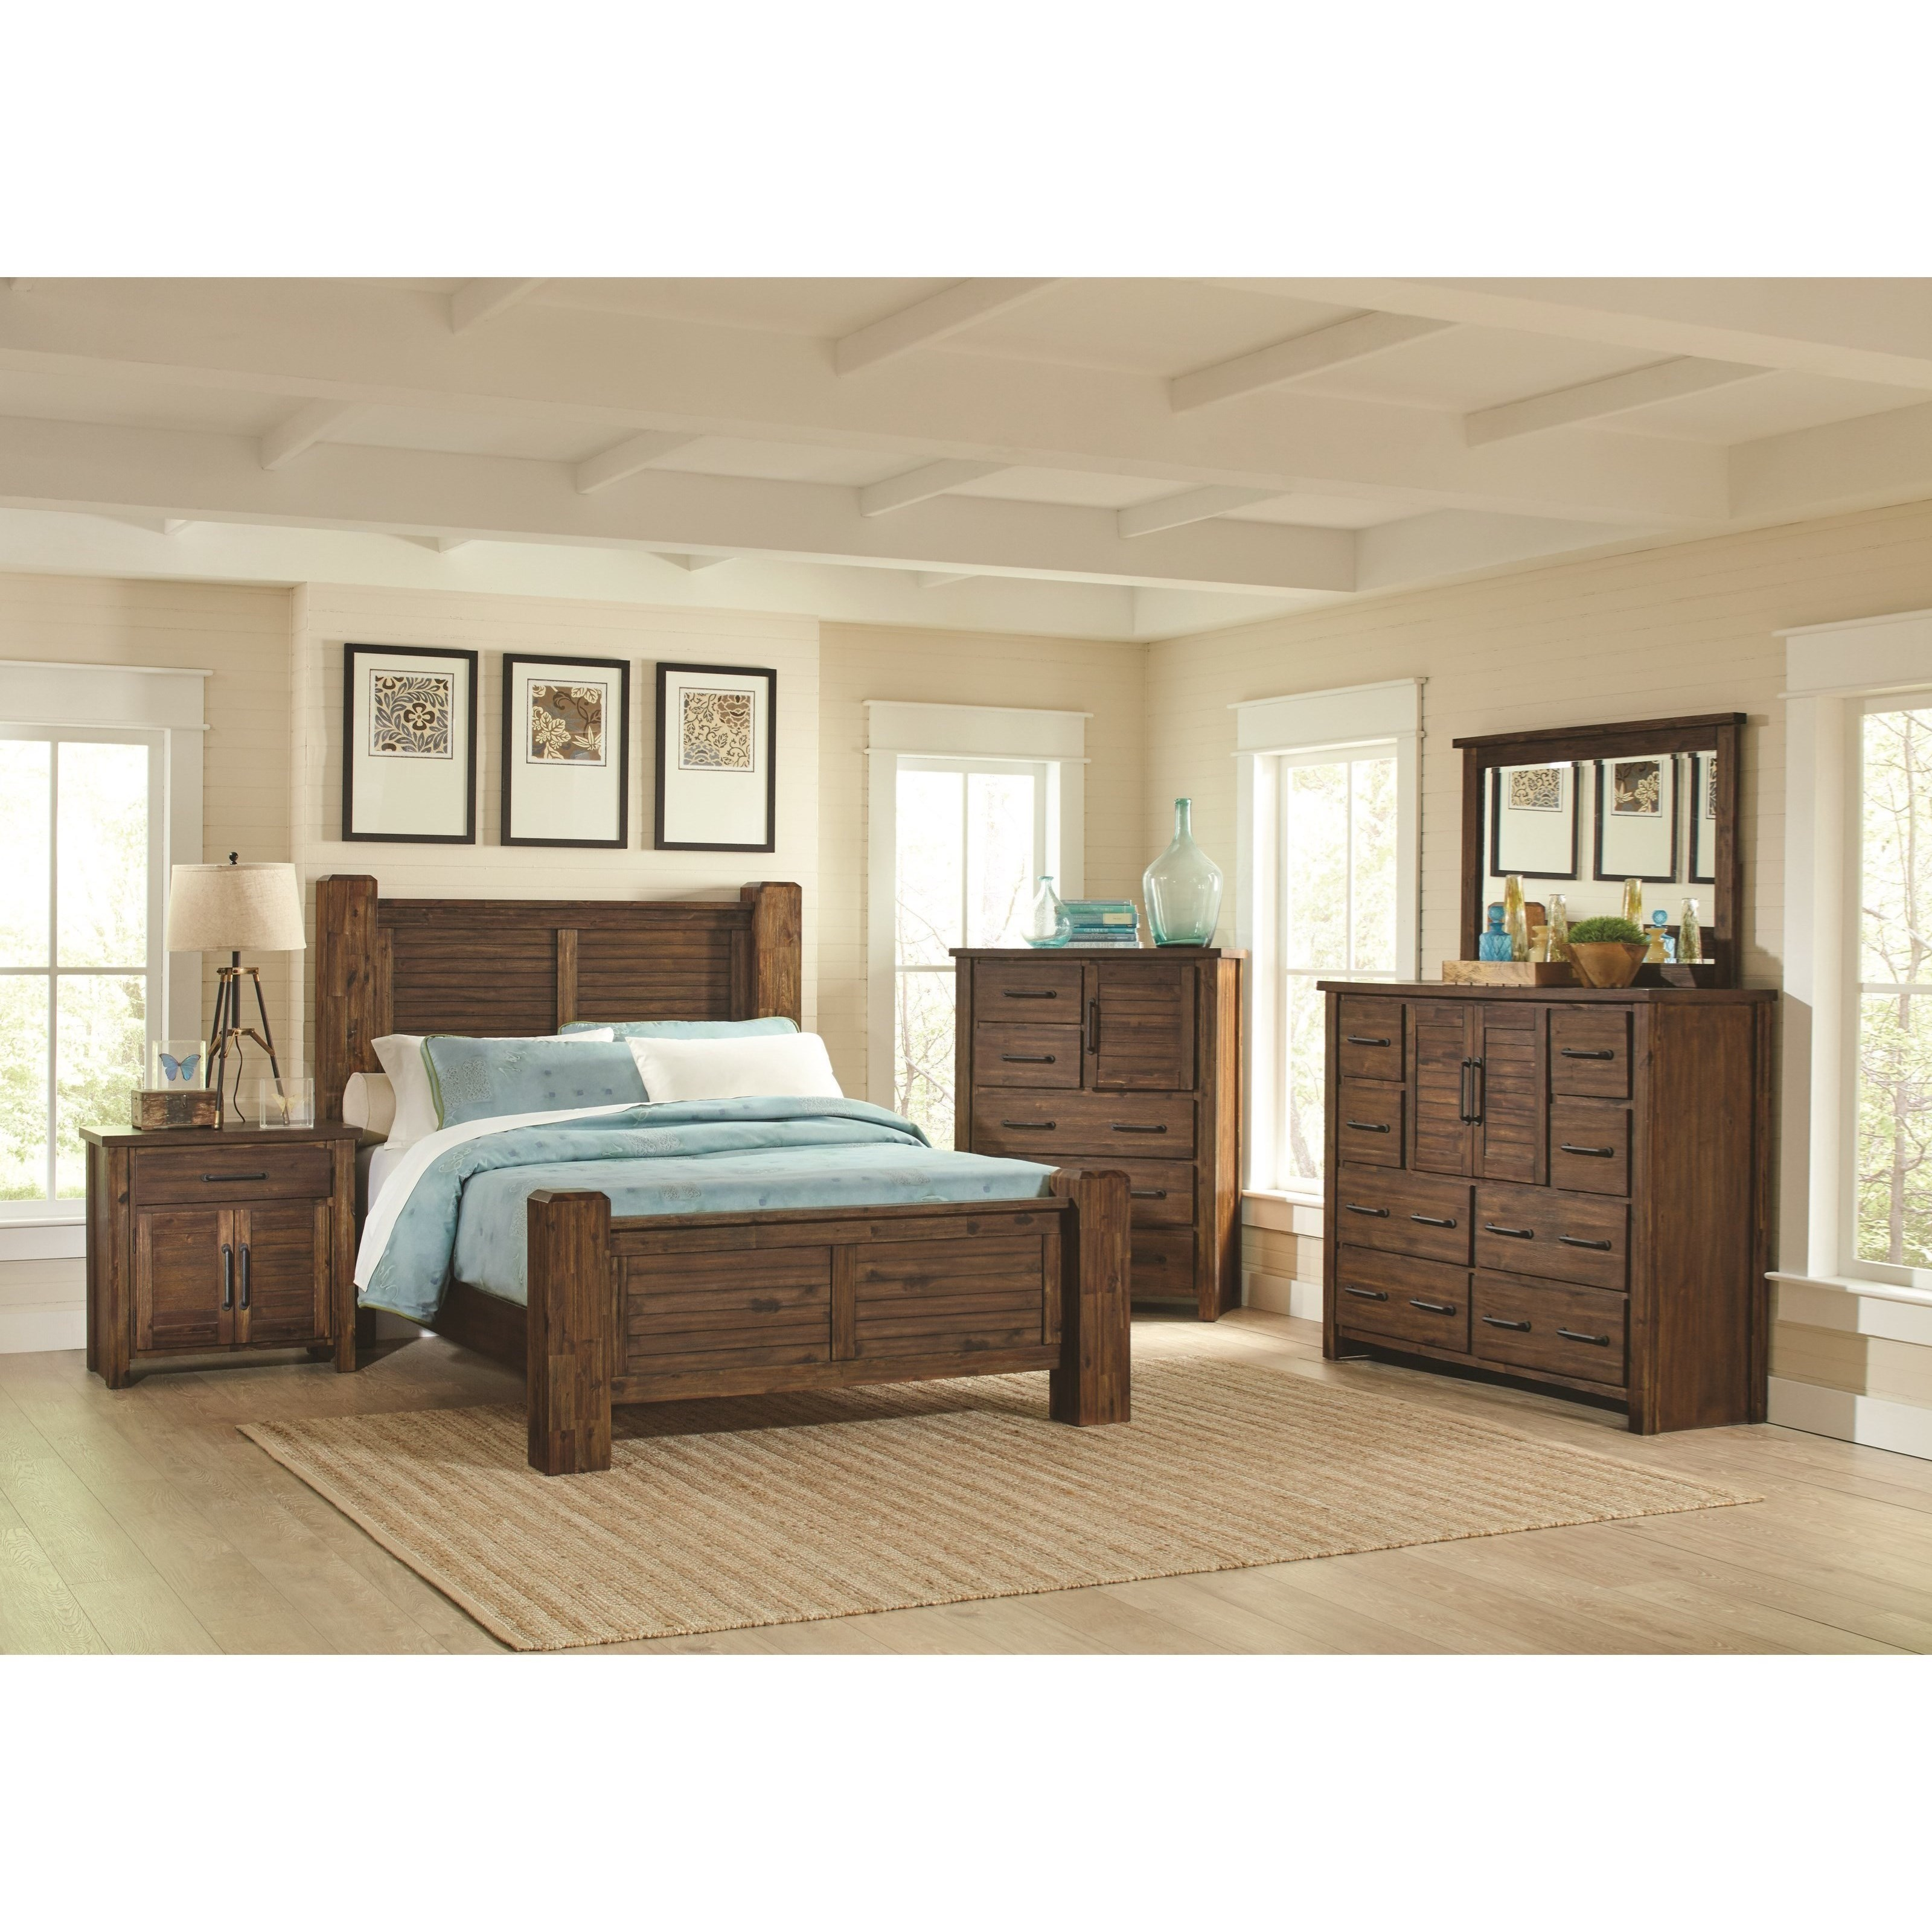 Coaster sutter creek queen bedroom group value city for Bedroom furniture groups